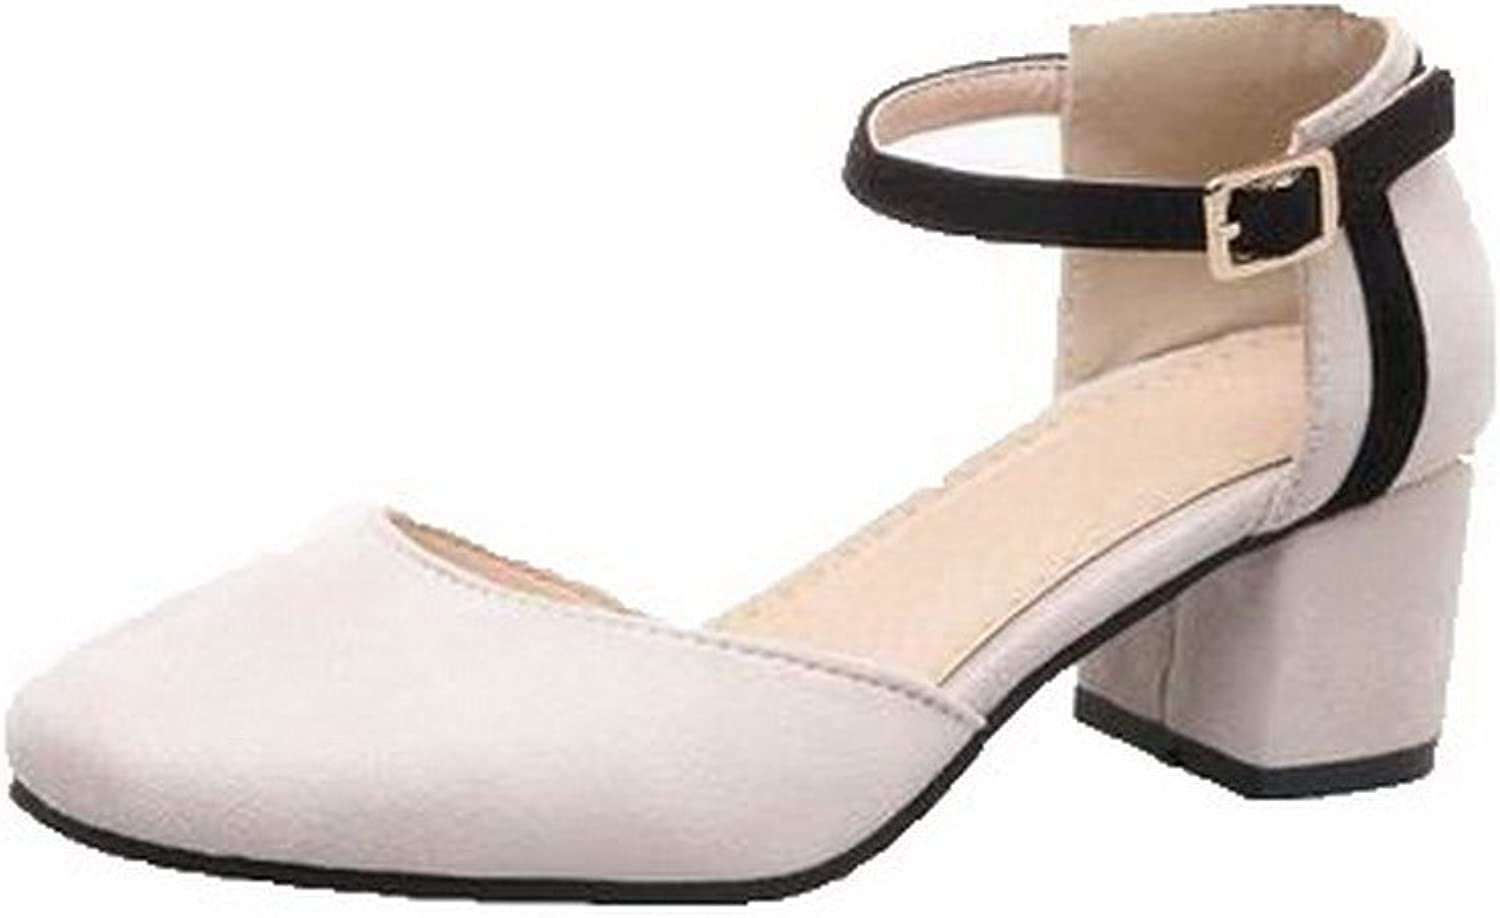 AllhqFashion Women's Frosted Kitten-Heels Closed-Toe Solid Buckle Sandals